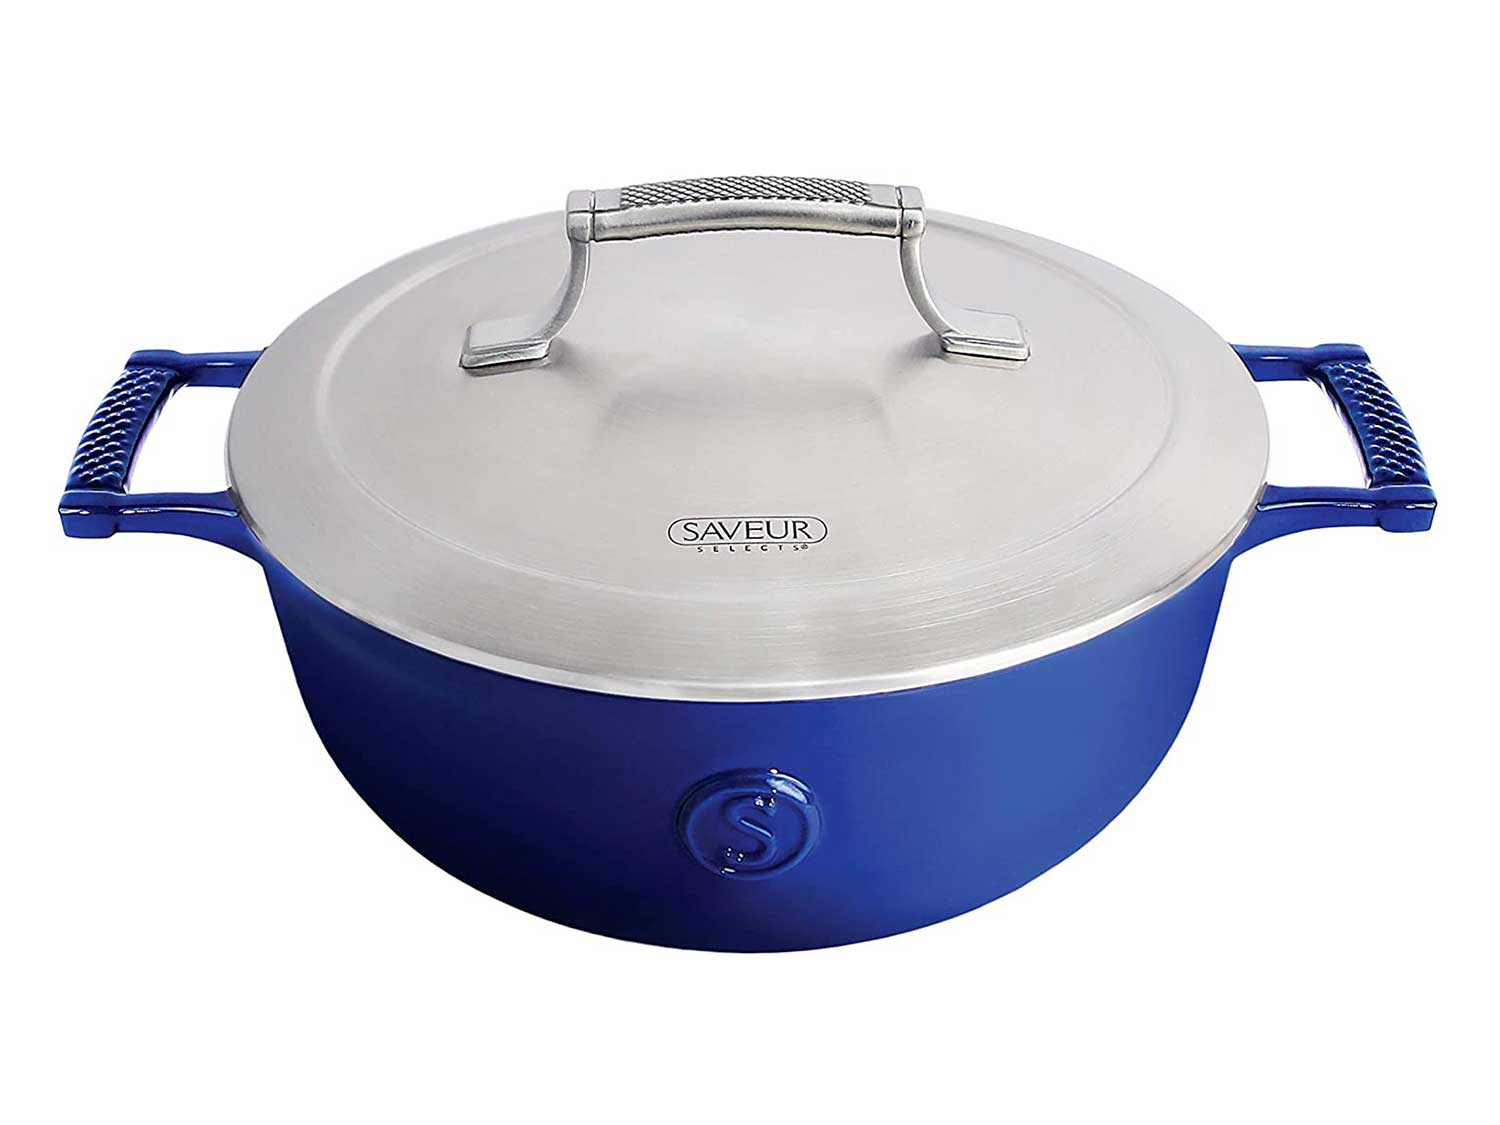 SAVEUR SELECTS Enameled Cast Iron 3-1/2-Quart Saucier with Stainless Steel Lid, Classic Blue, Voyage Series